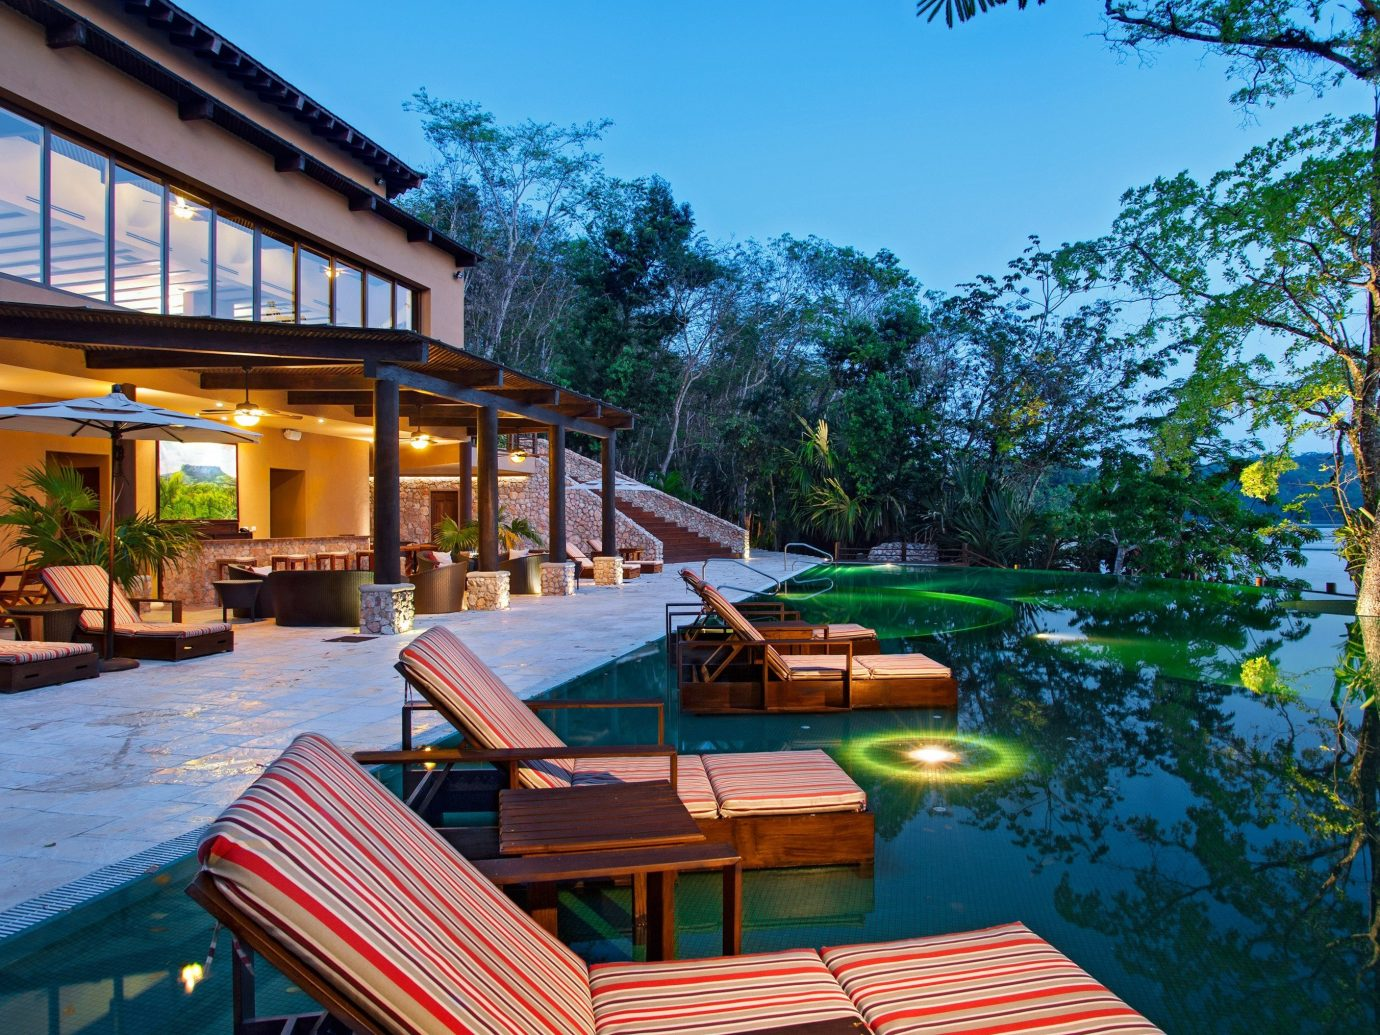 Hotels Outdoors + Adventure tree outdoor leisure property Resort swimming pool estate house vacation home real estate Villa eco hotel cottage condominium backyard area furniture several